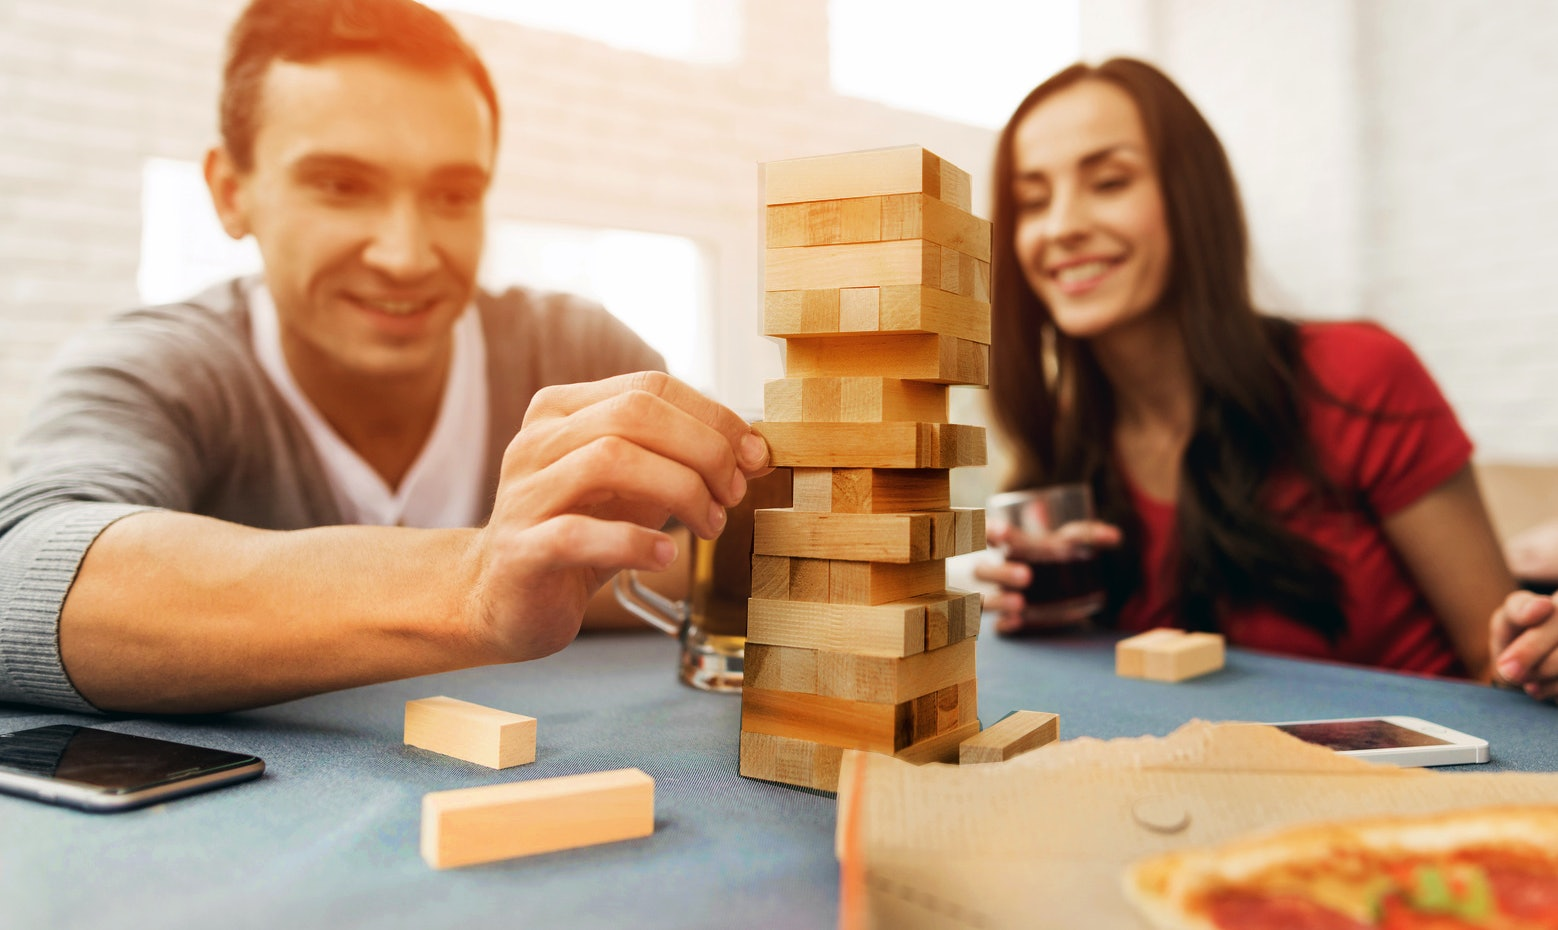 The 10 Best 2-Player Board Games